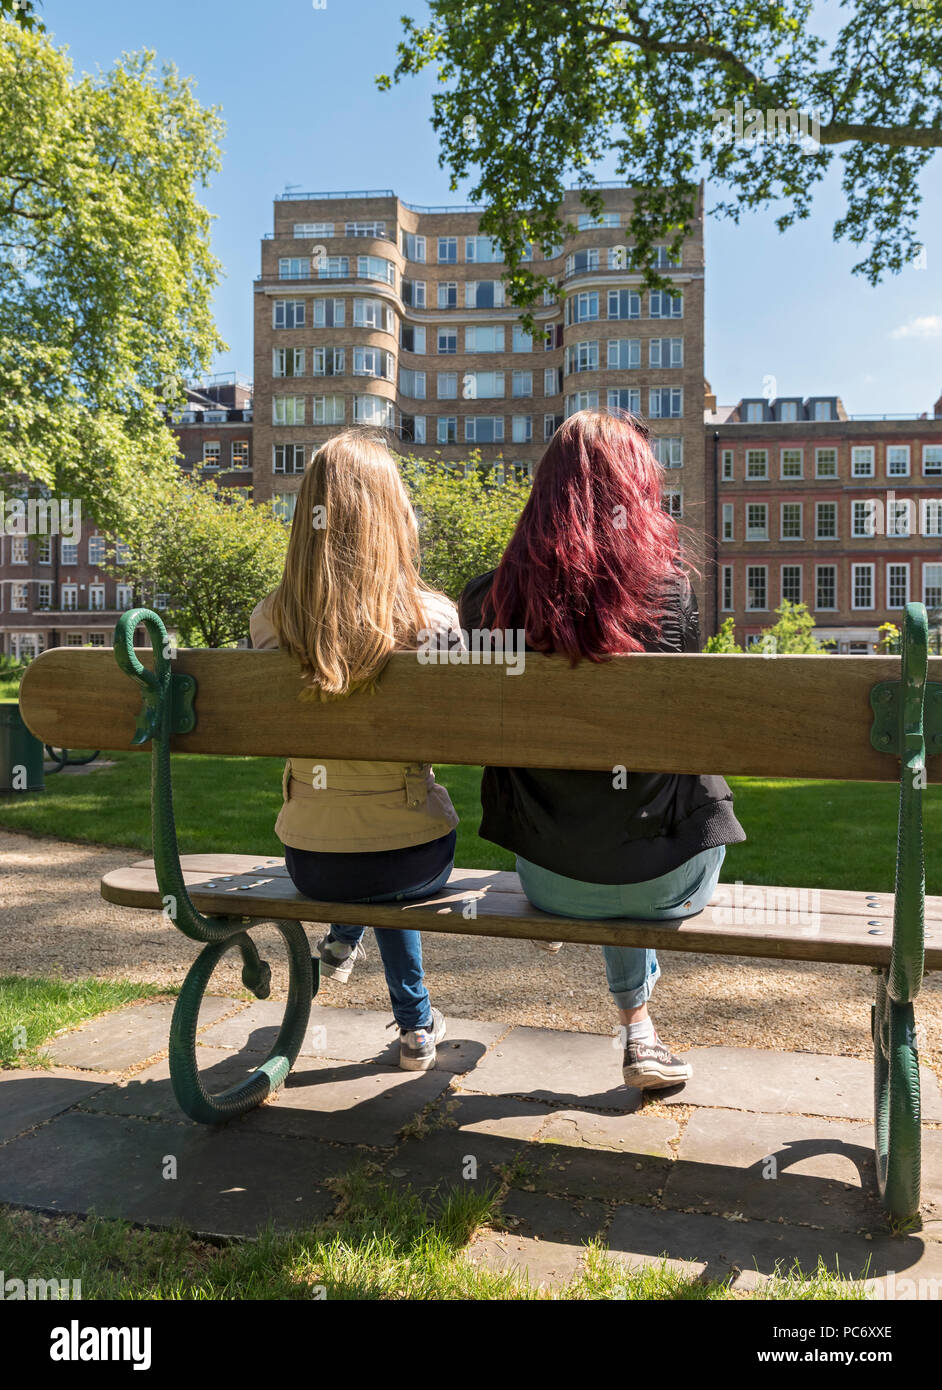 Two girls sit on a bench outside Florin Court building aka Whitehaven Mansions residence of Hercule Poirot,  Charterhouse Sq, London, England, UK - Stock Image